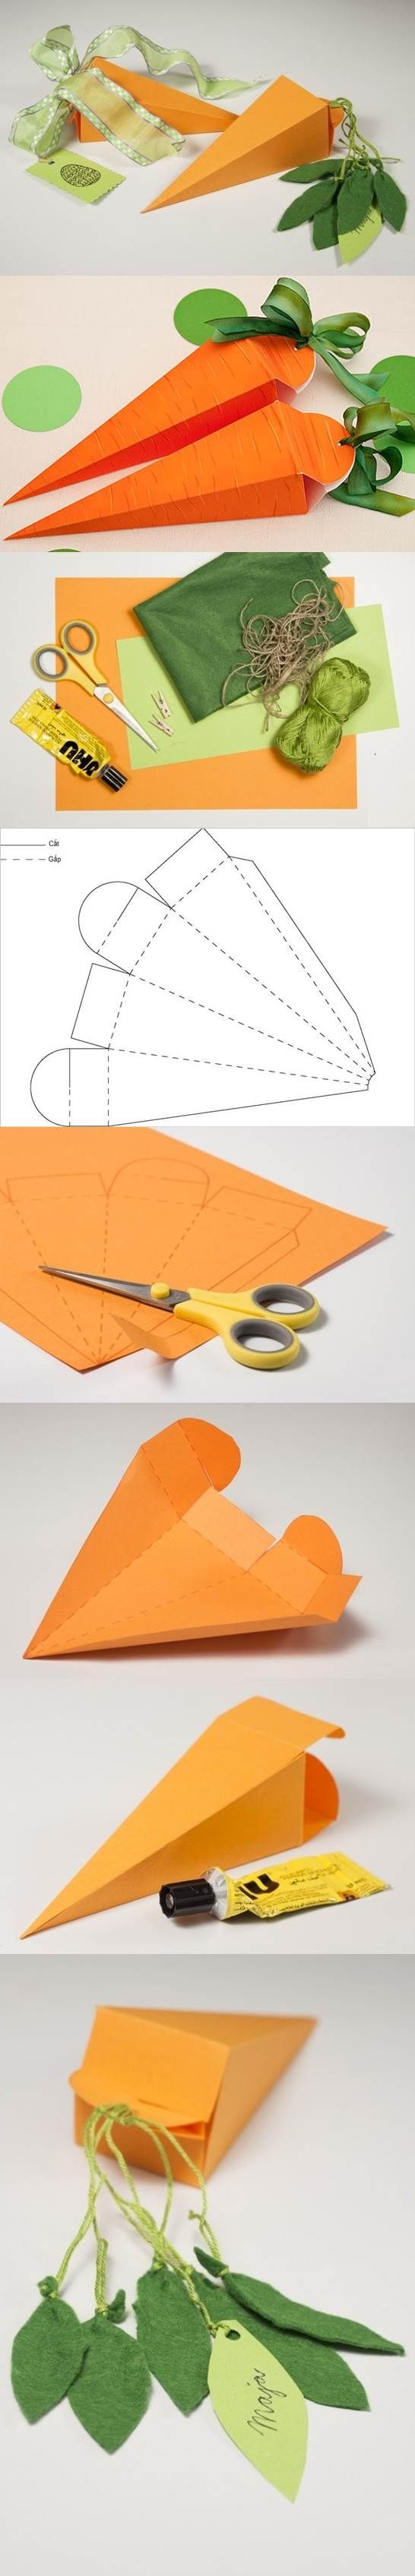 How to make a carrot gift box diy diy crafts do it yourself diy projects gift box carrot